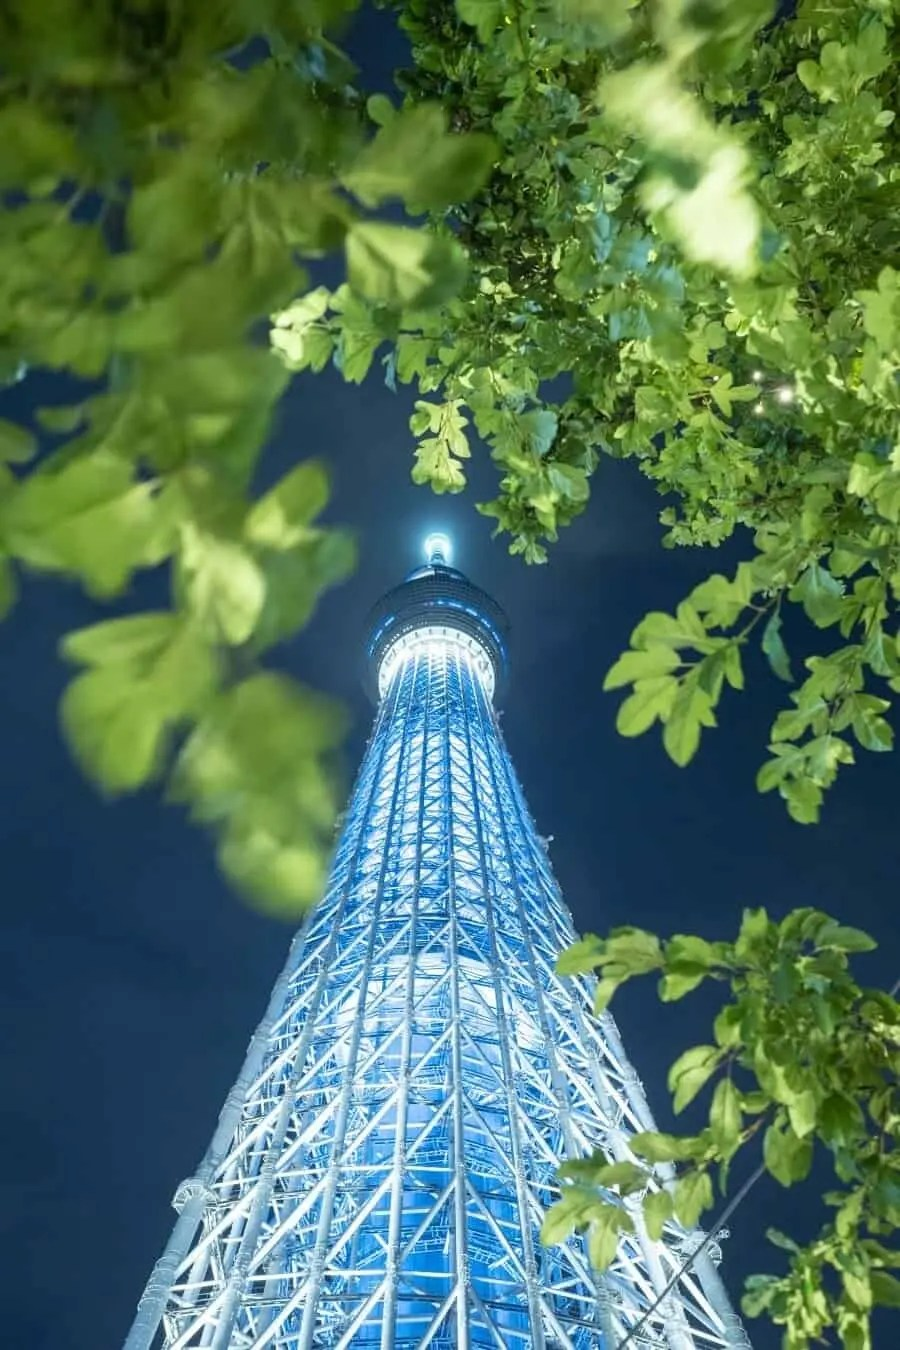 Tokyo Skytree, Tokyo Photography Locations - A Photographer's Guide to Photo Spots in Tokyo